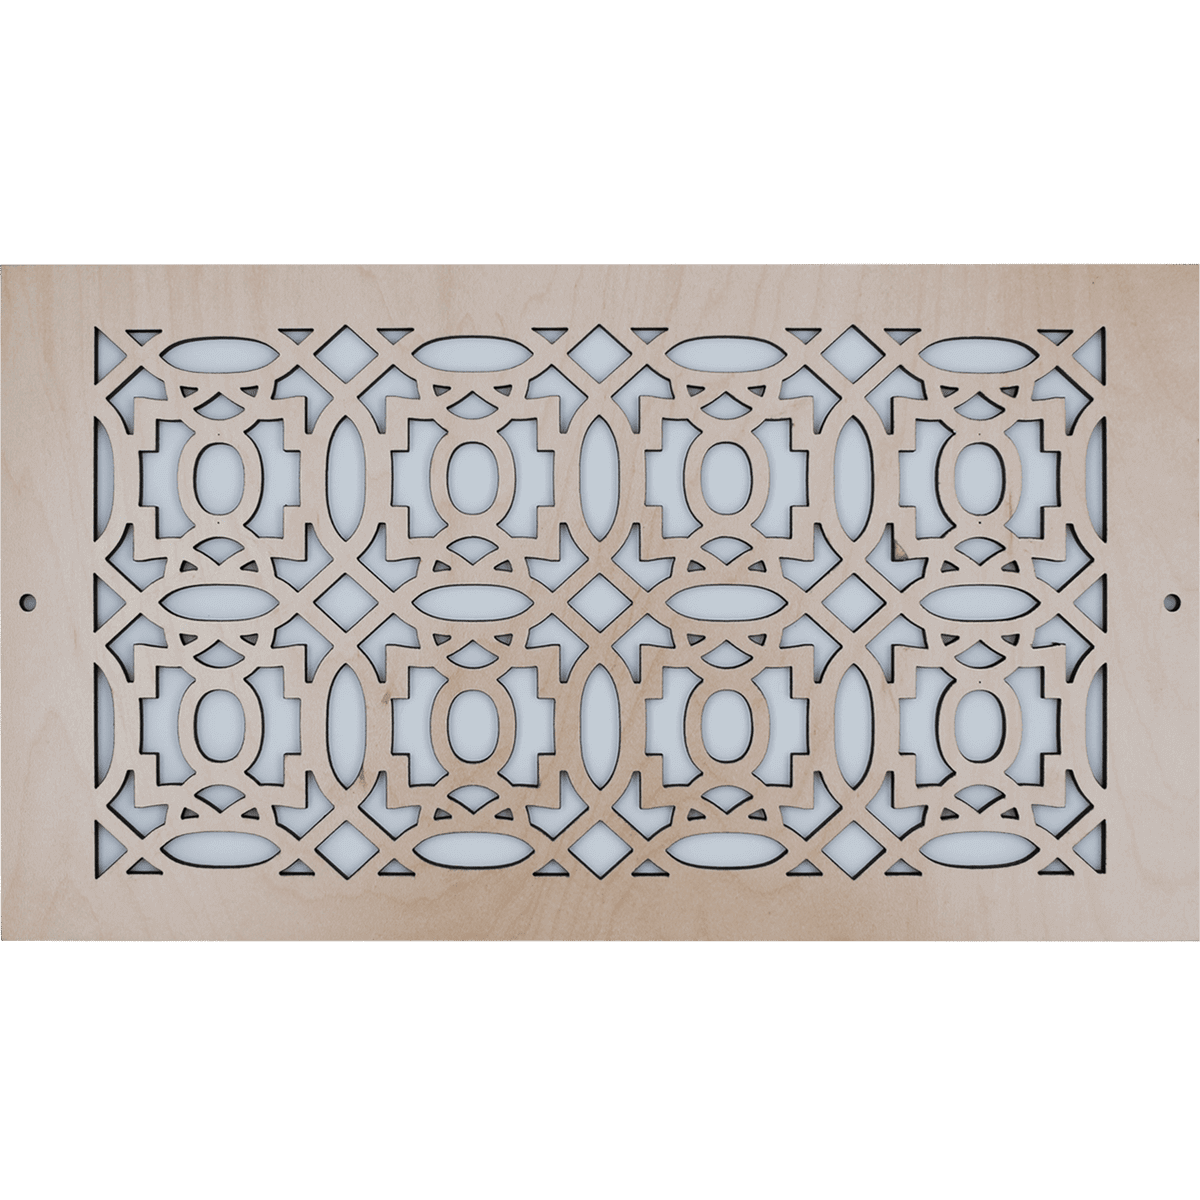 Moroccan Vent Cover, Wall Vent, Air Vent Cover, Intake Air Grille, Stellar Air, Decorative Vent Covers, Charleston, SC